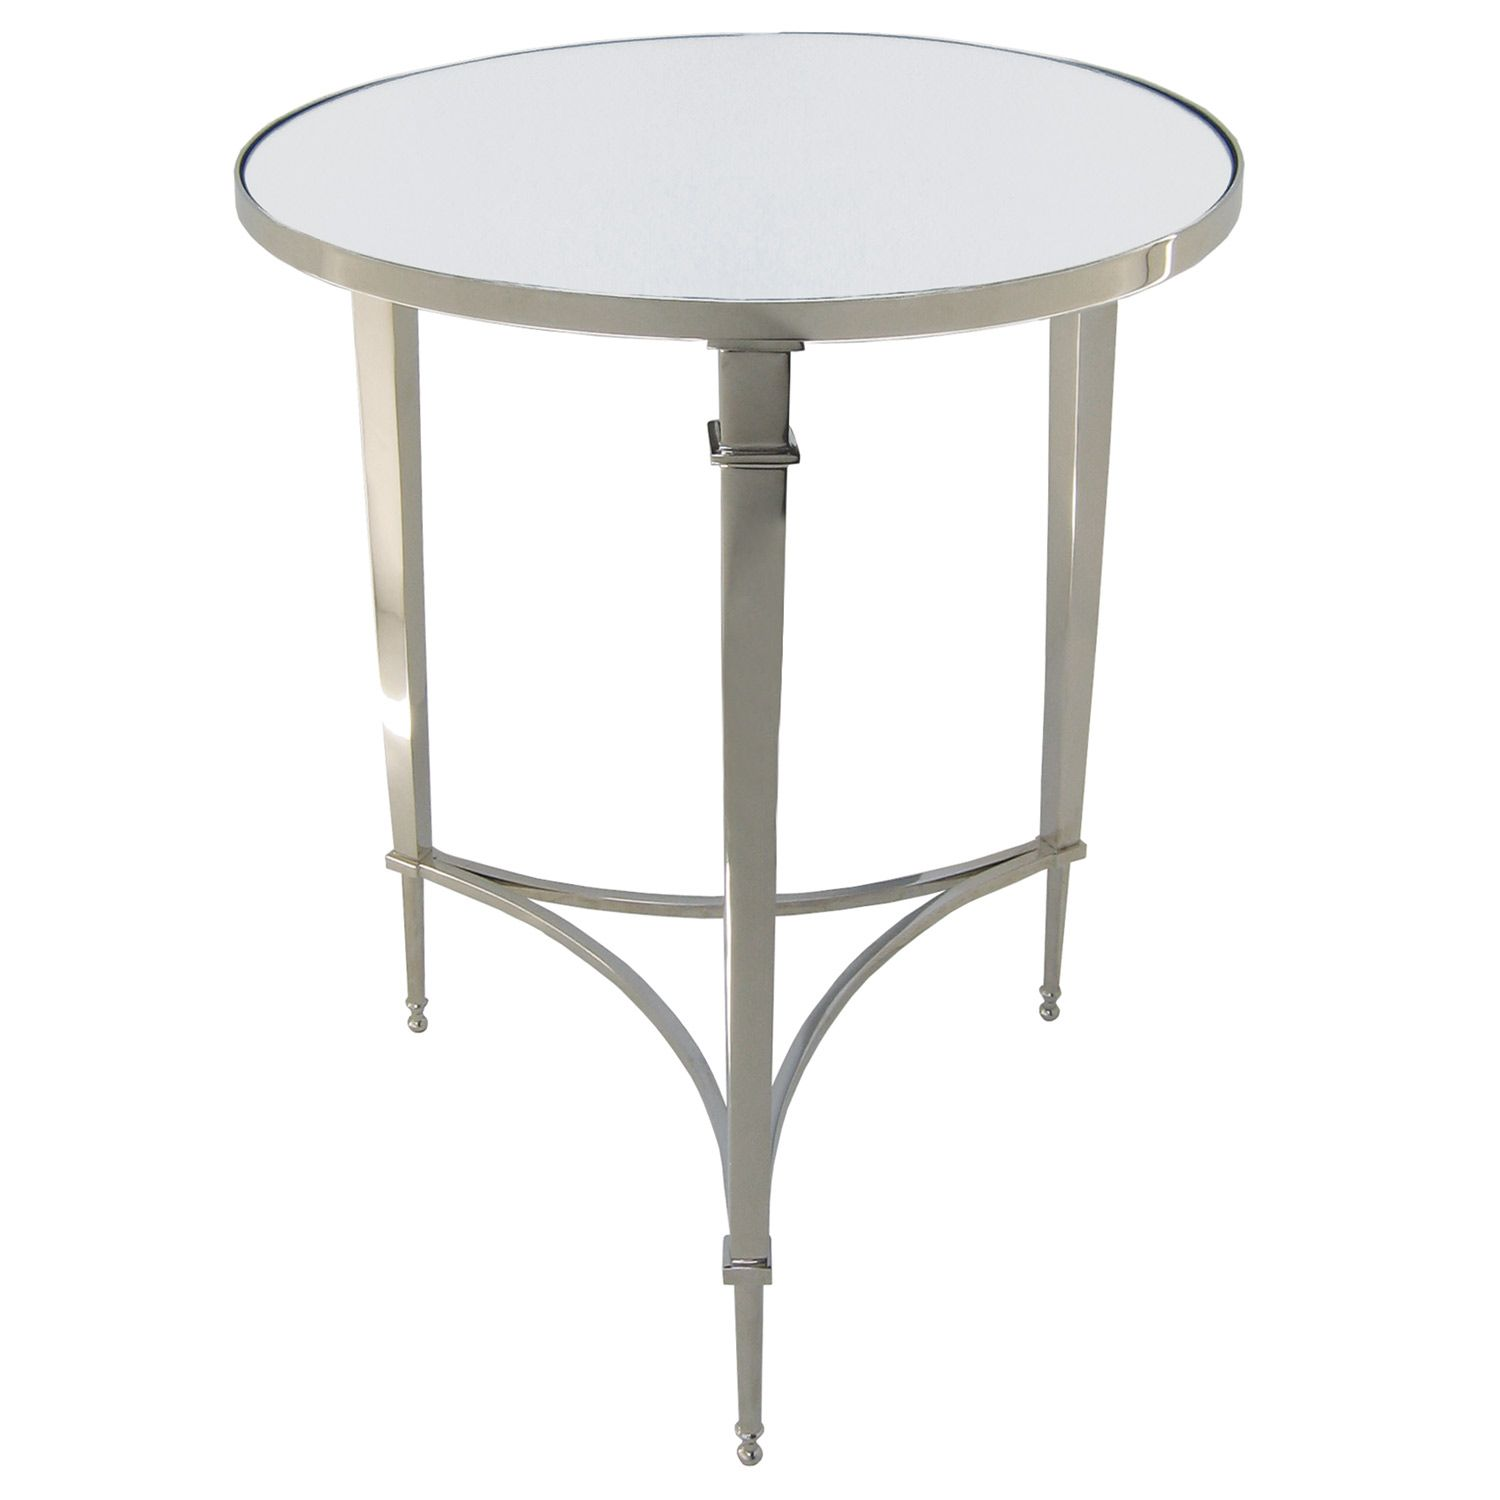 Global views round french square leg table nickle home pinterest